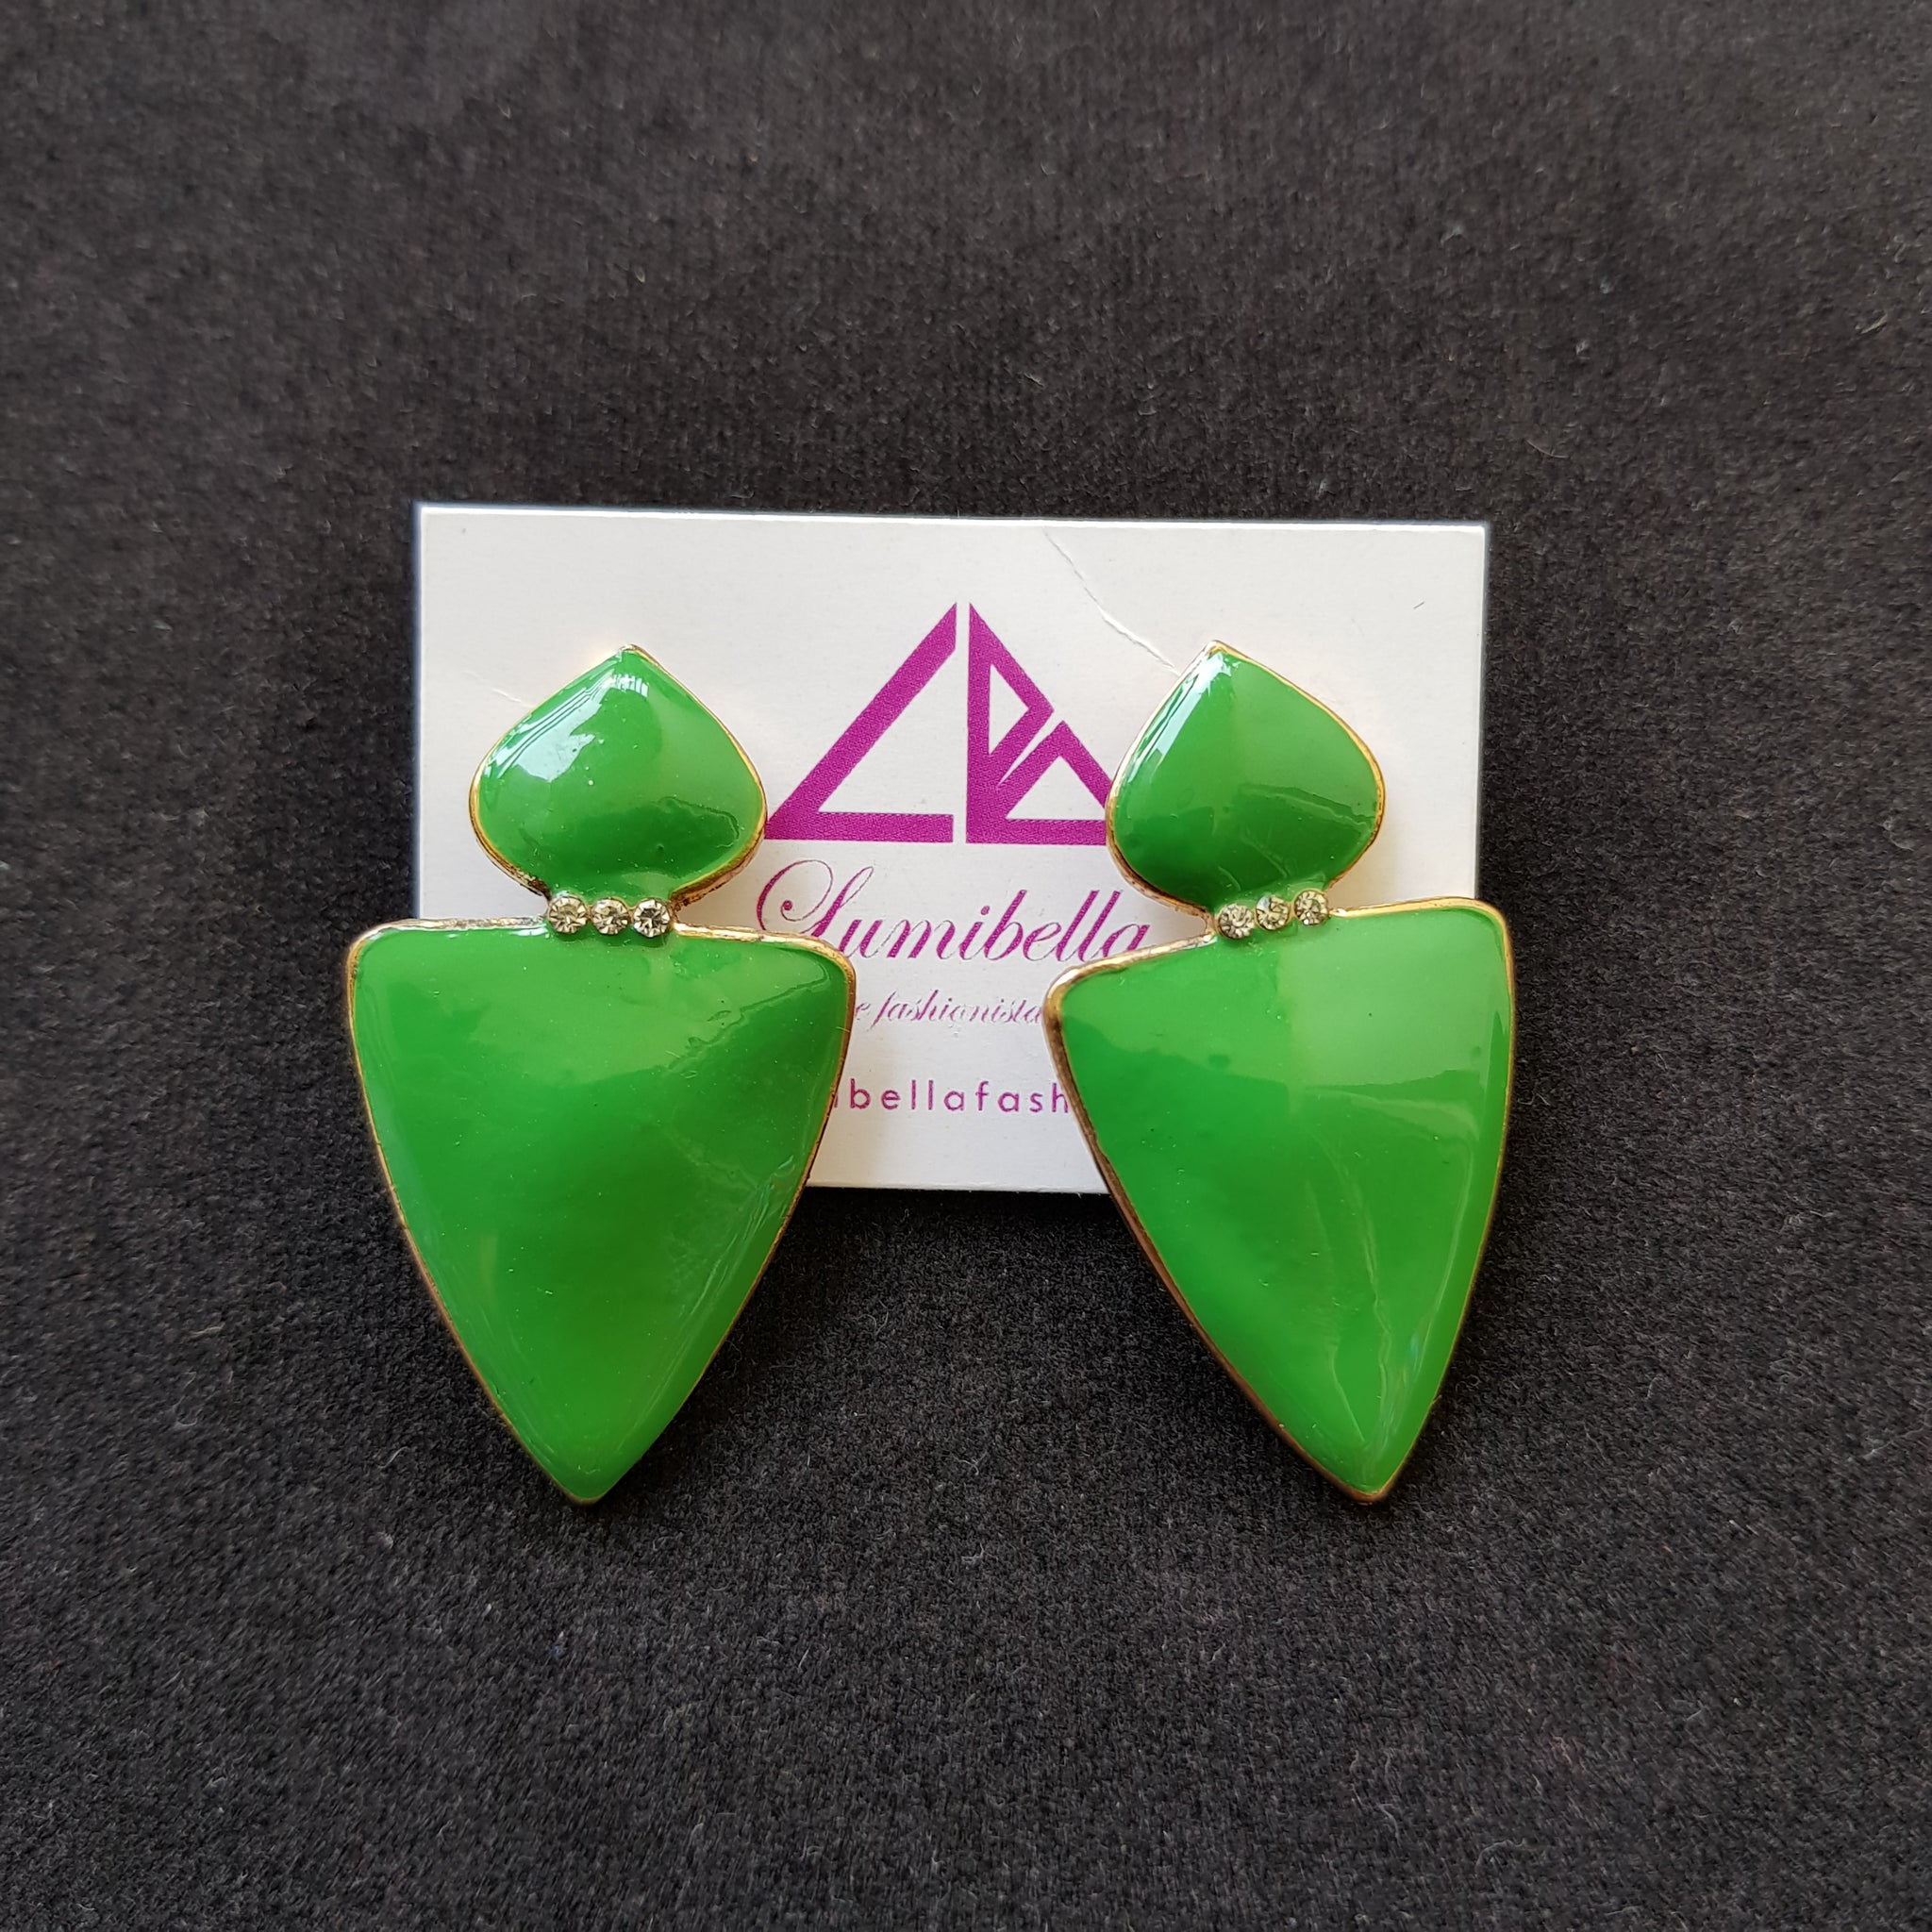 Green colour enamel finish fashion earrings